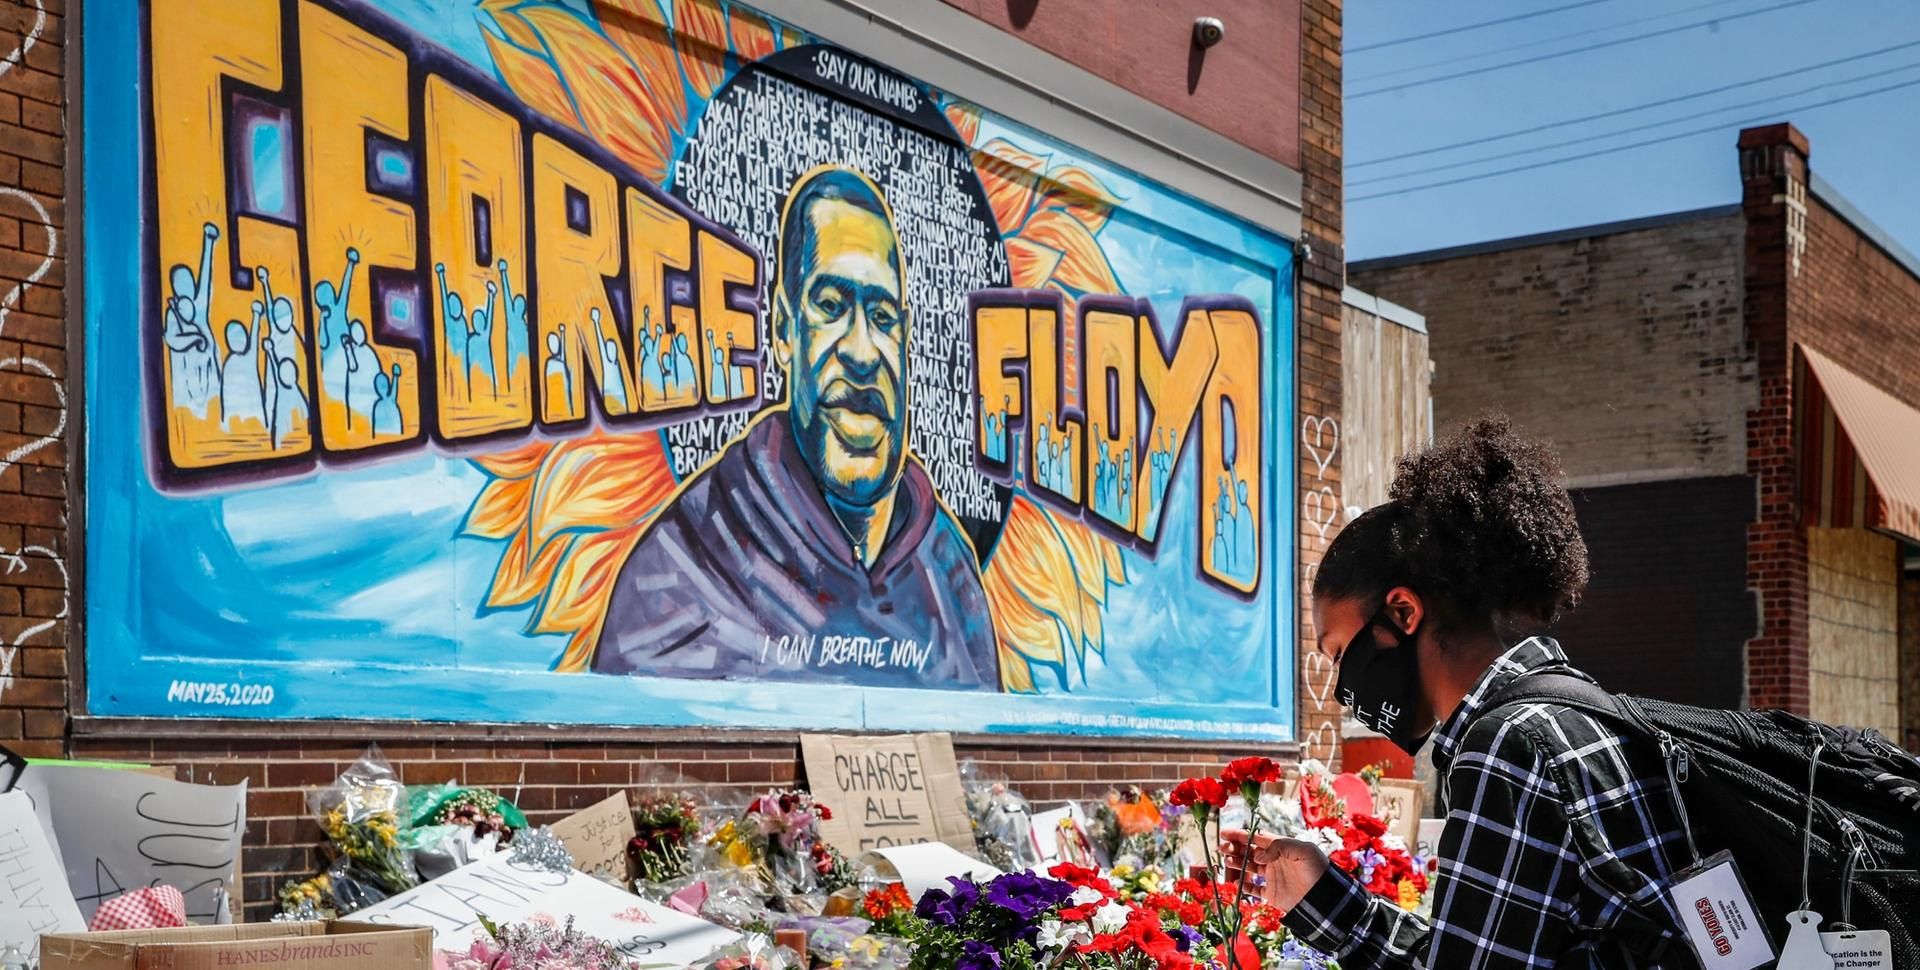 Malaysia Hammond, 19, places flowers at a memorial mural for George Floyd at the corner of Chicago Avenue and 38th Street, Sunday, May 31, 2020, in Minneapolis. Protests continued following the death of George Floyd, who died after being restrained by Minneapolis police officers on Memorial Day AP Photo/John Minchillo